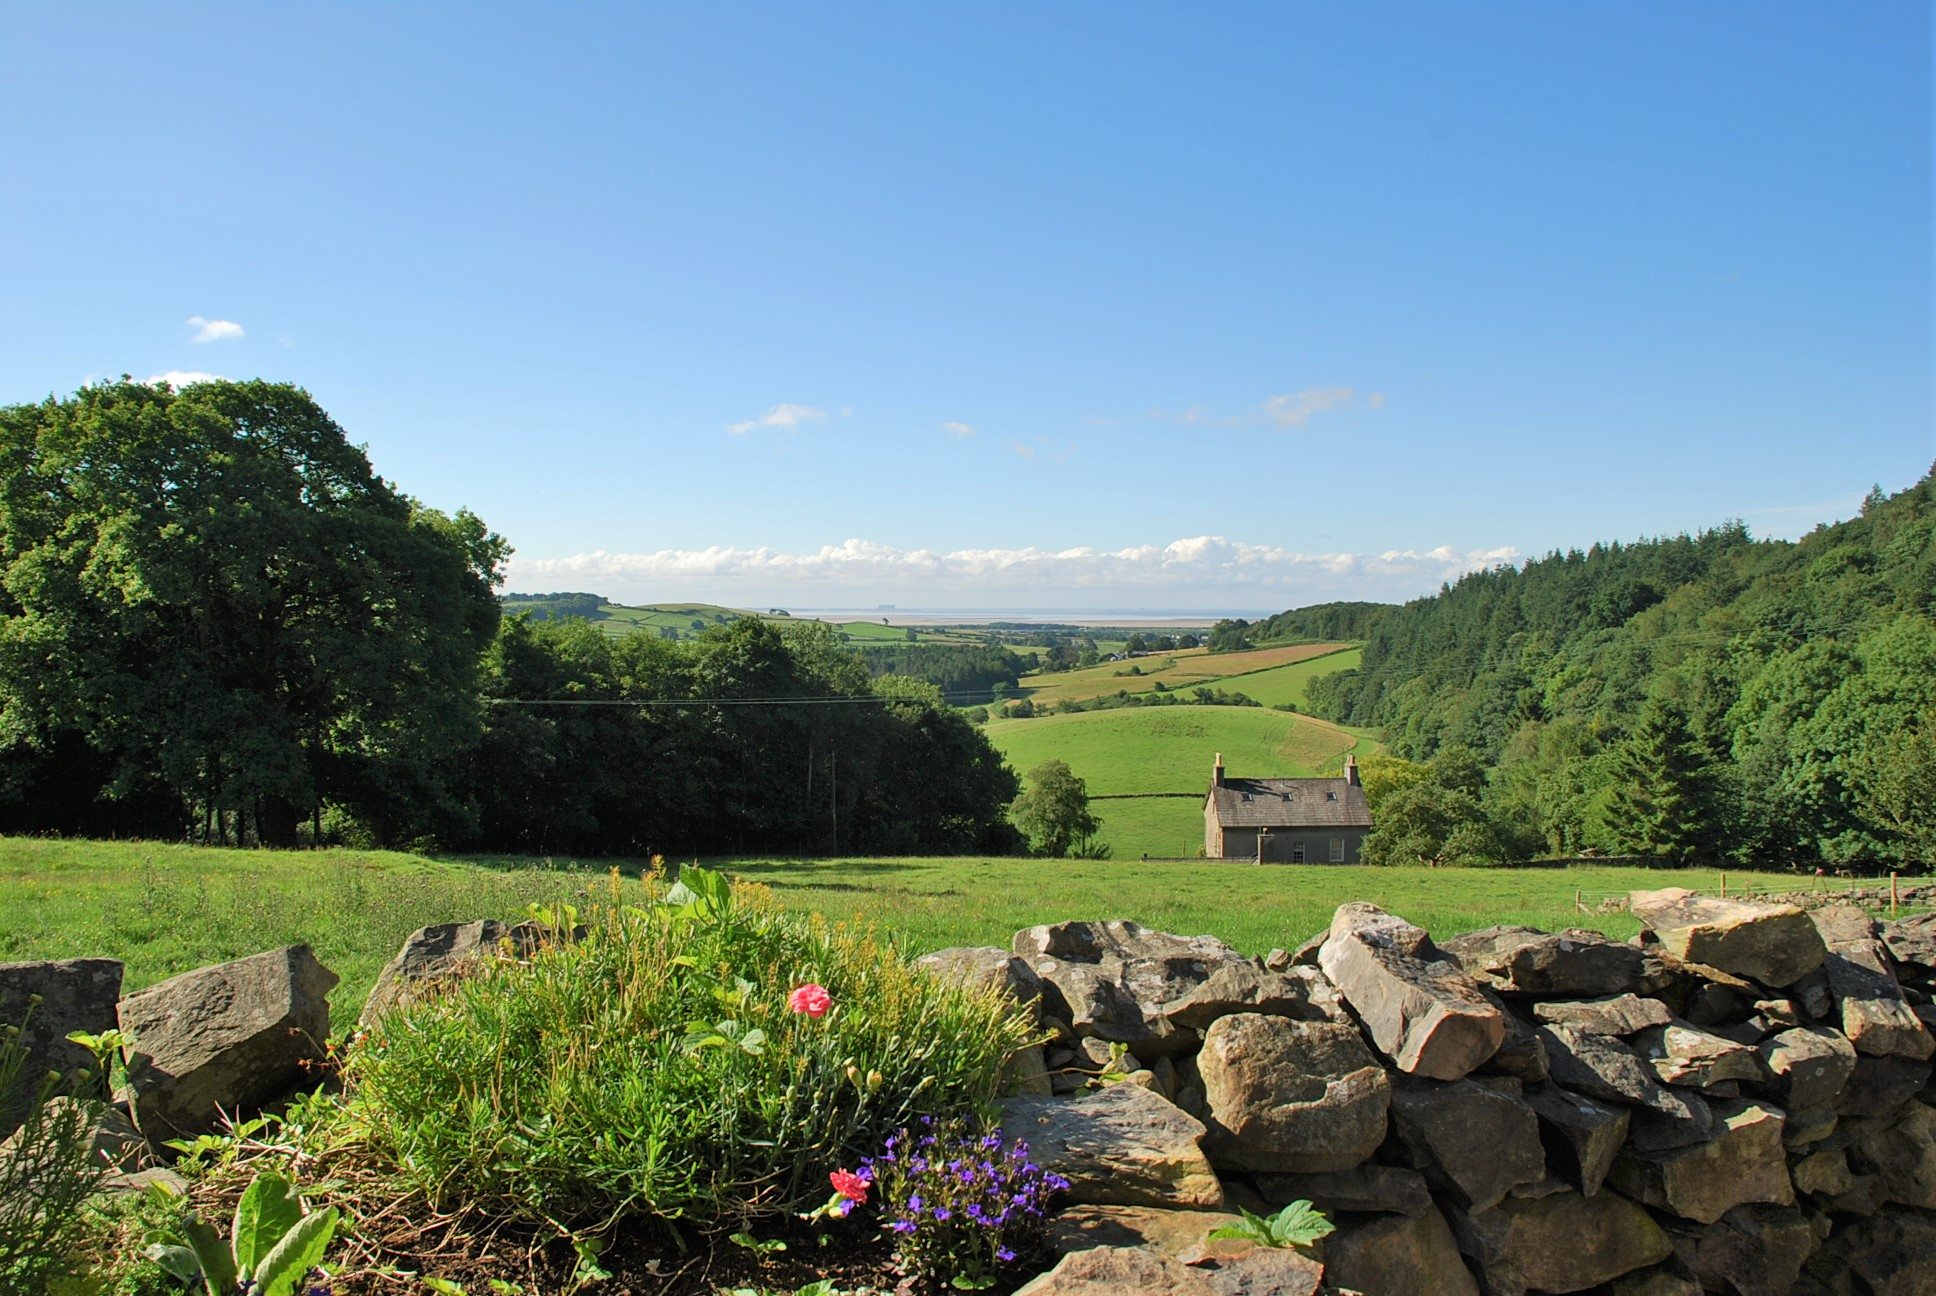 Wow, what a view. The view from Cartmel Hill